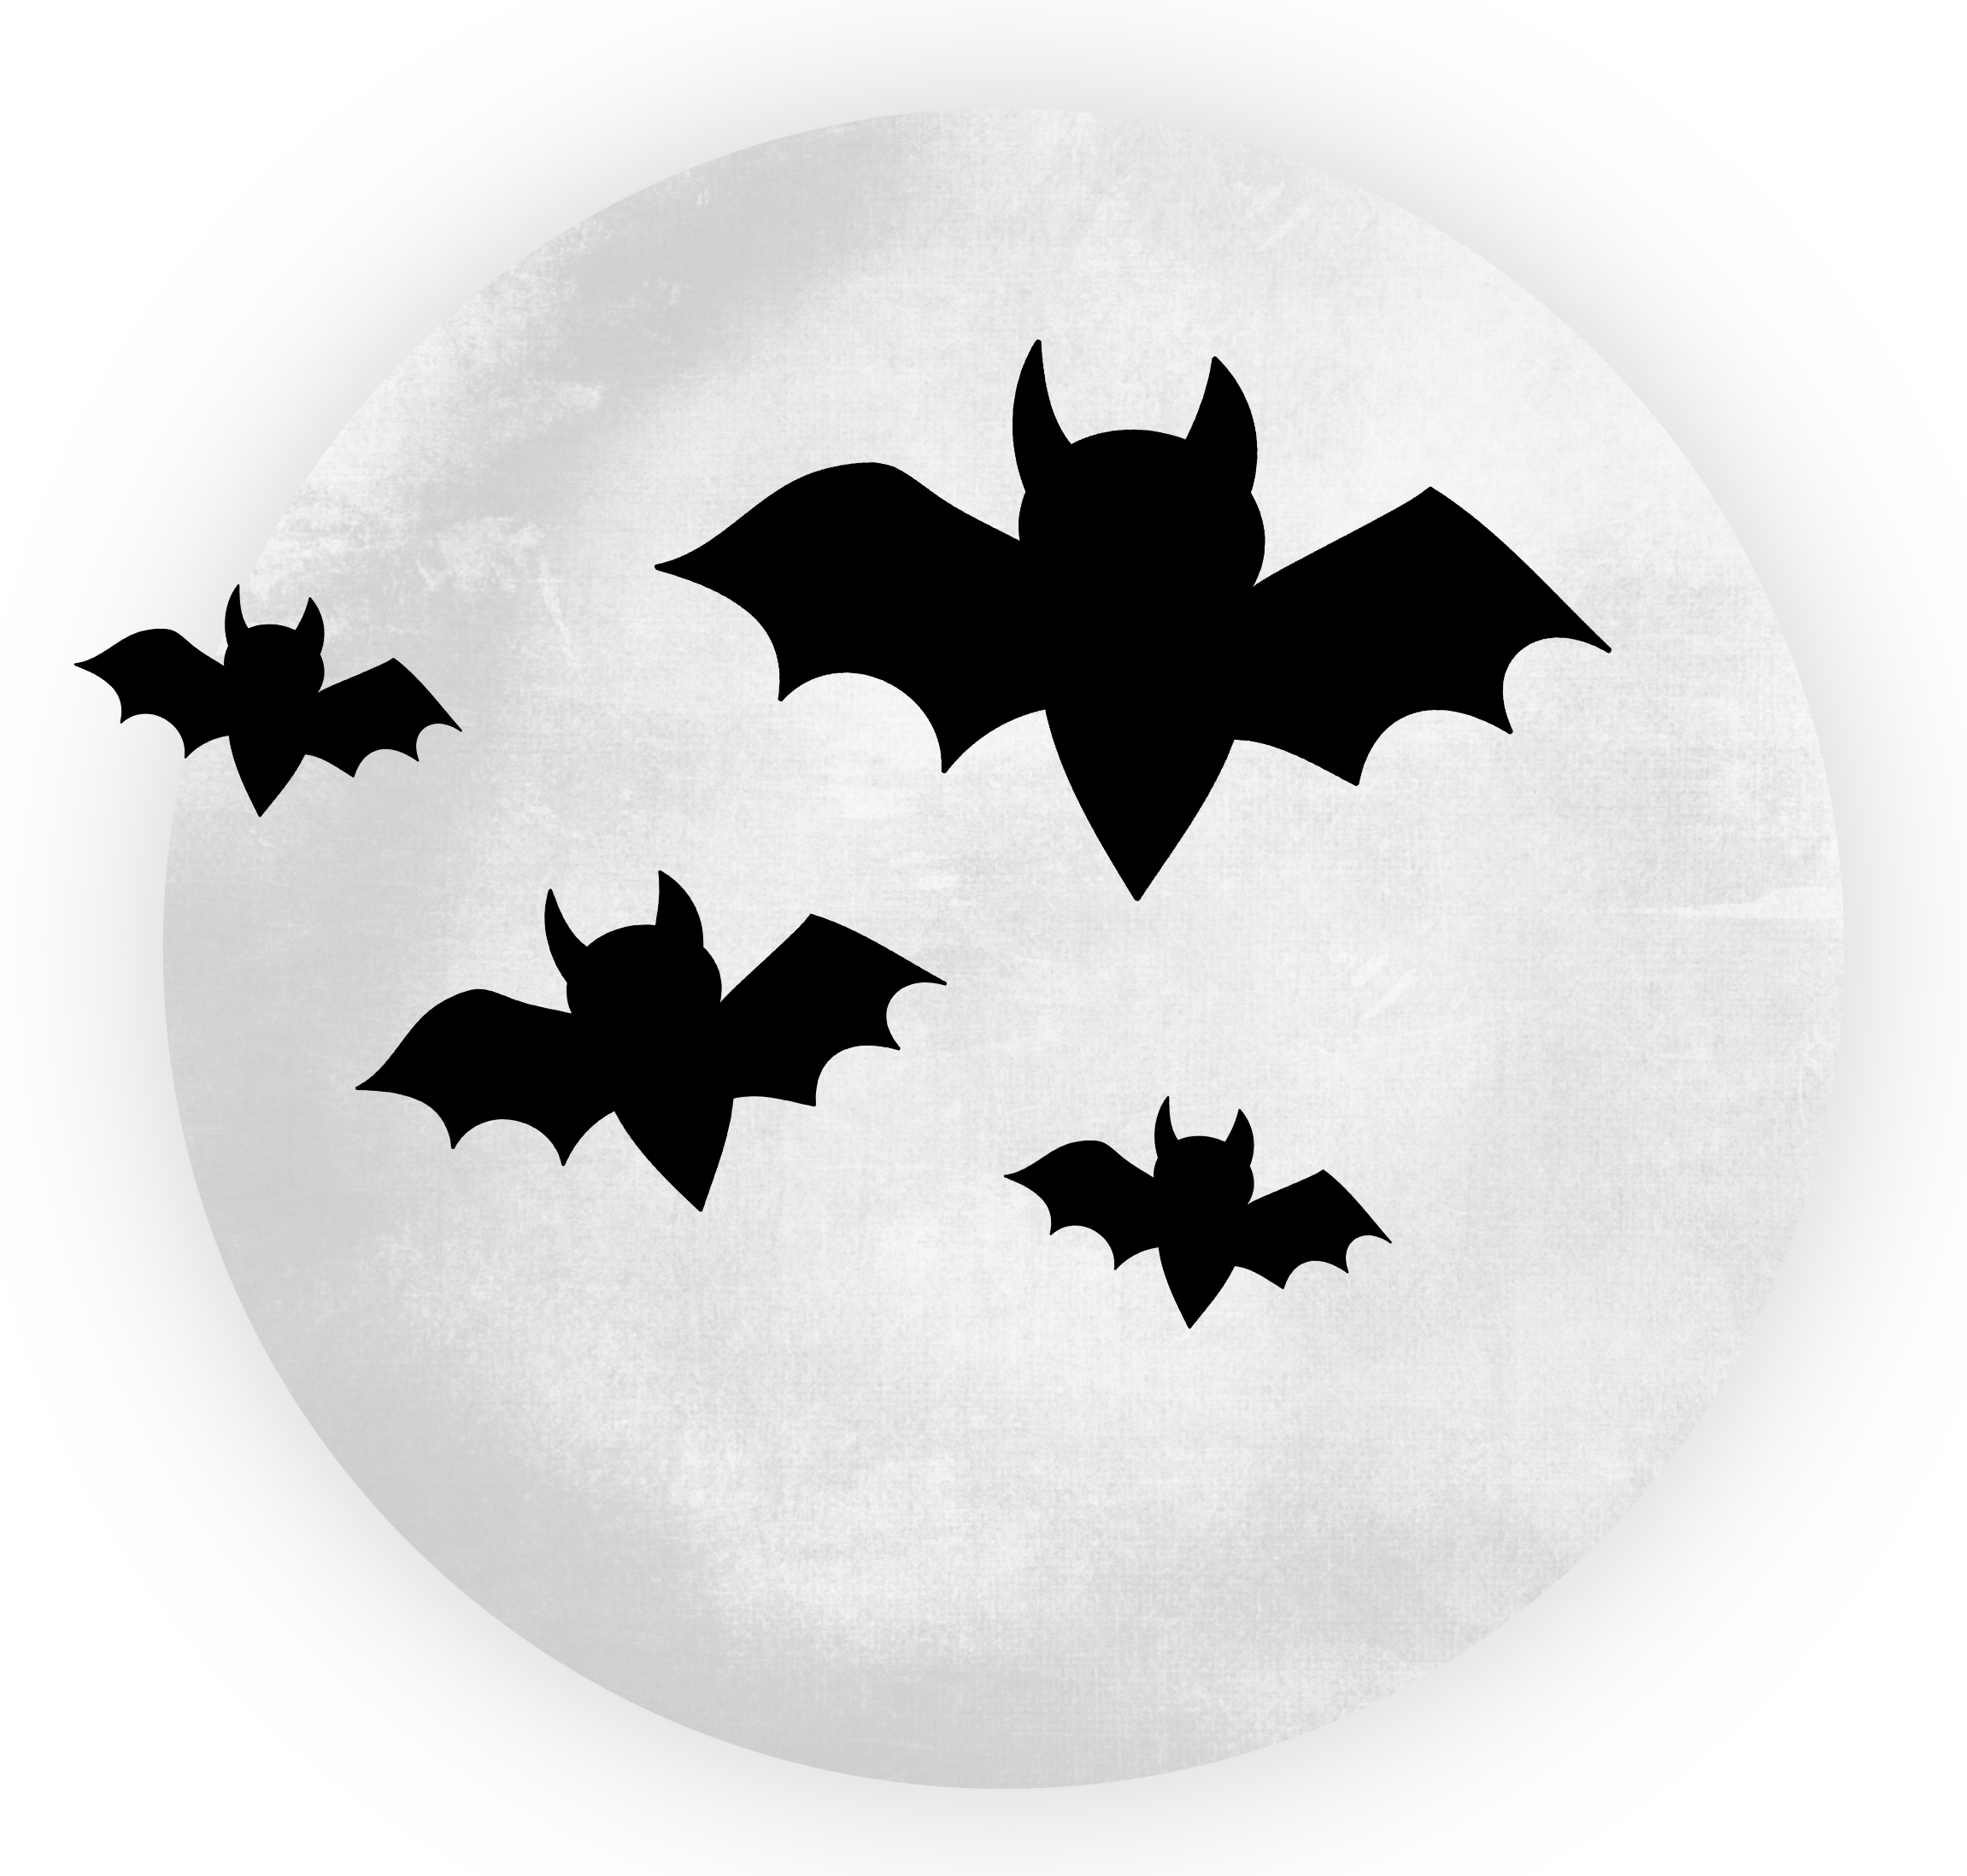 clip free library Halloween clipart bat. Large transparent moon with